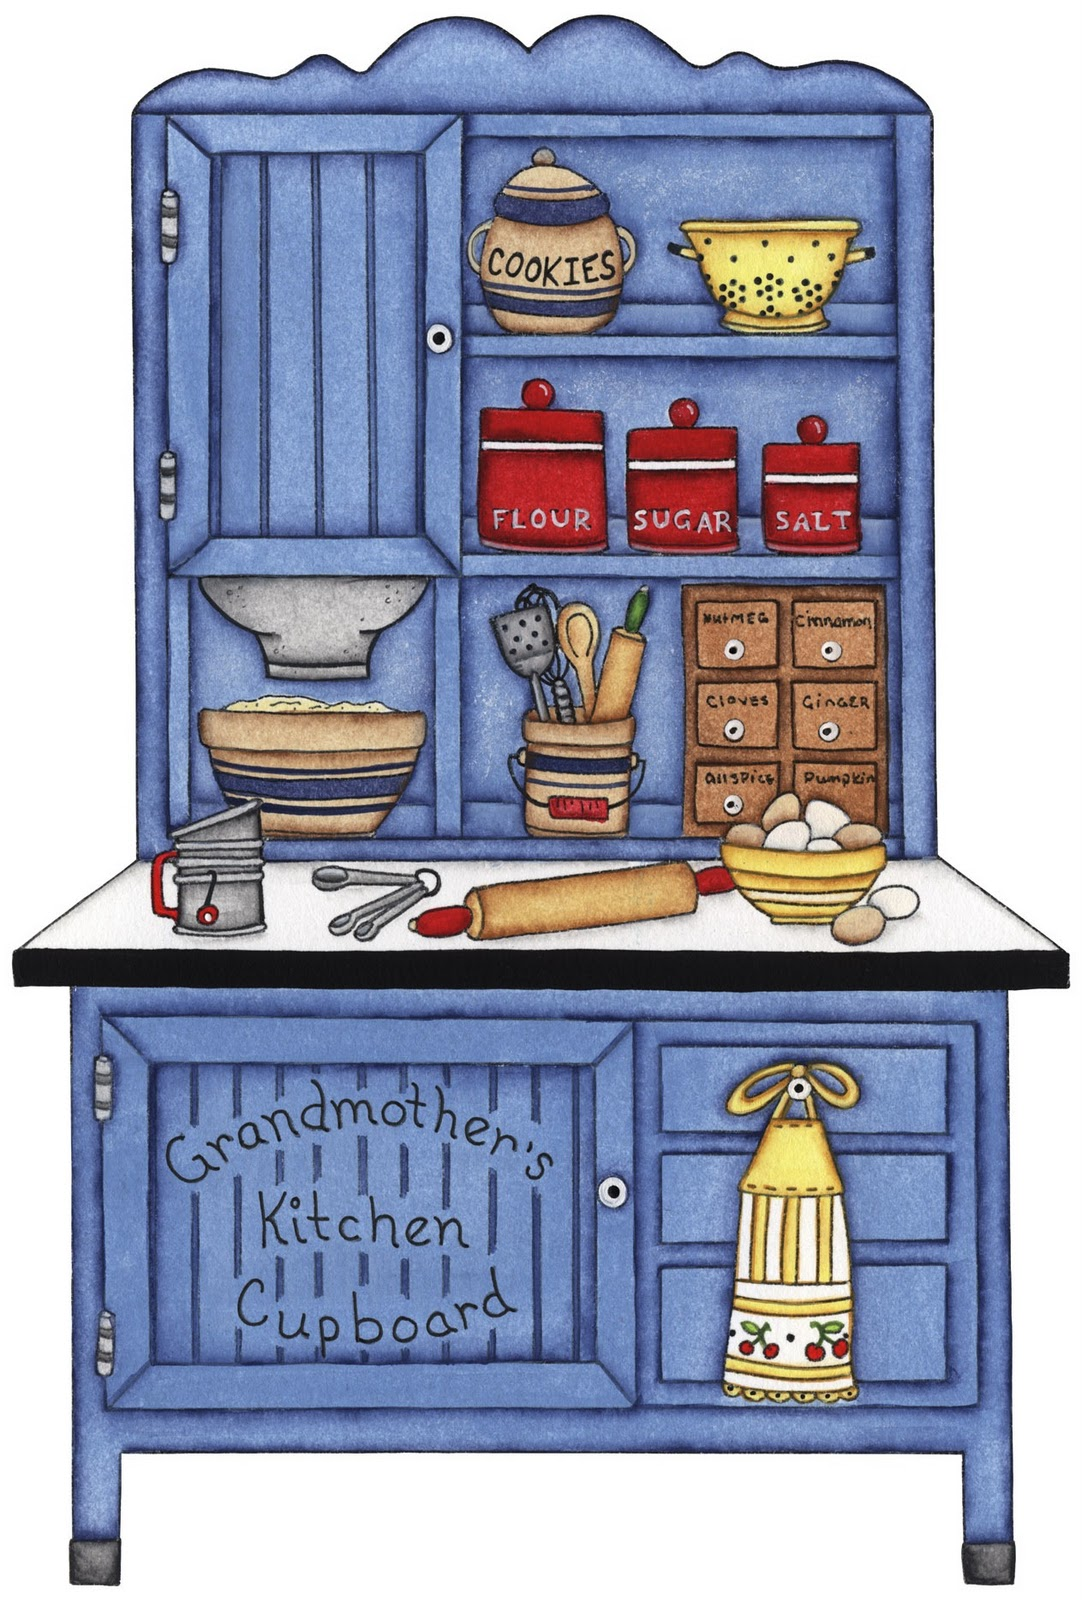 1000+ images about Kitchen clipart on Pinterest.